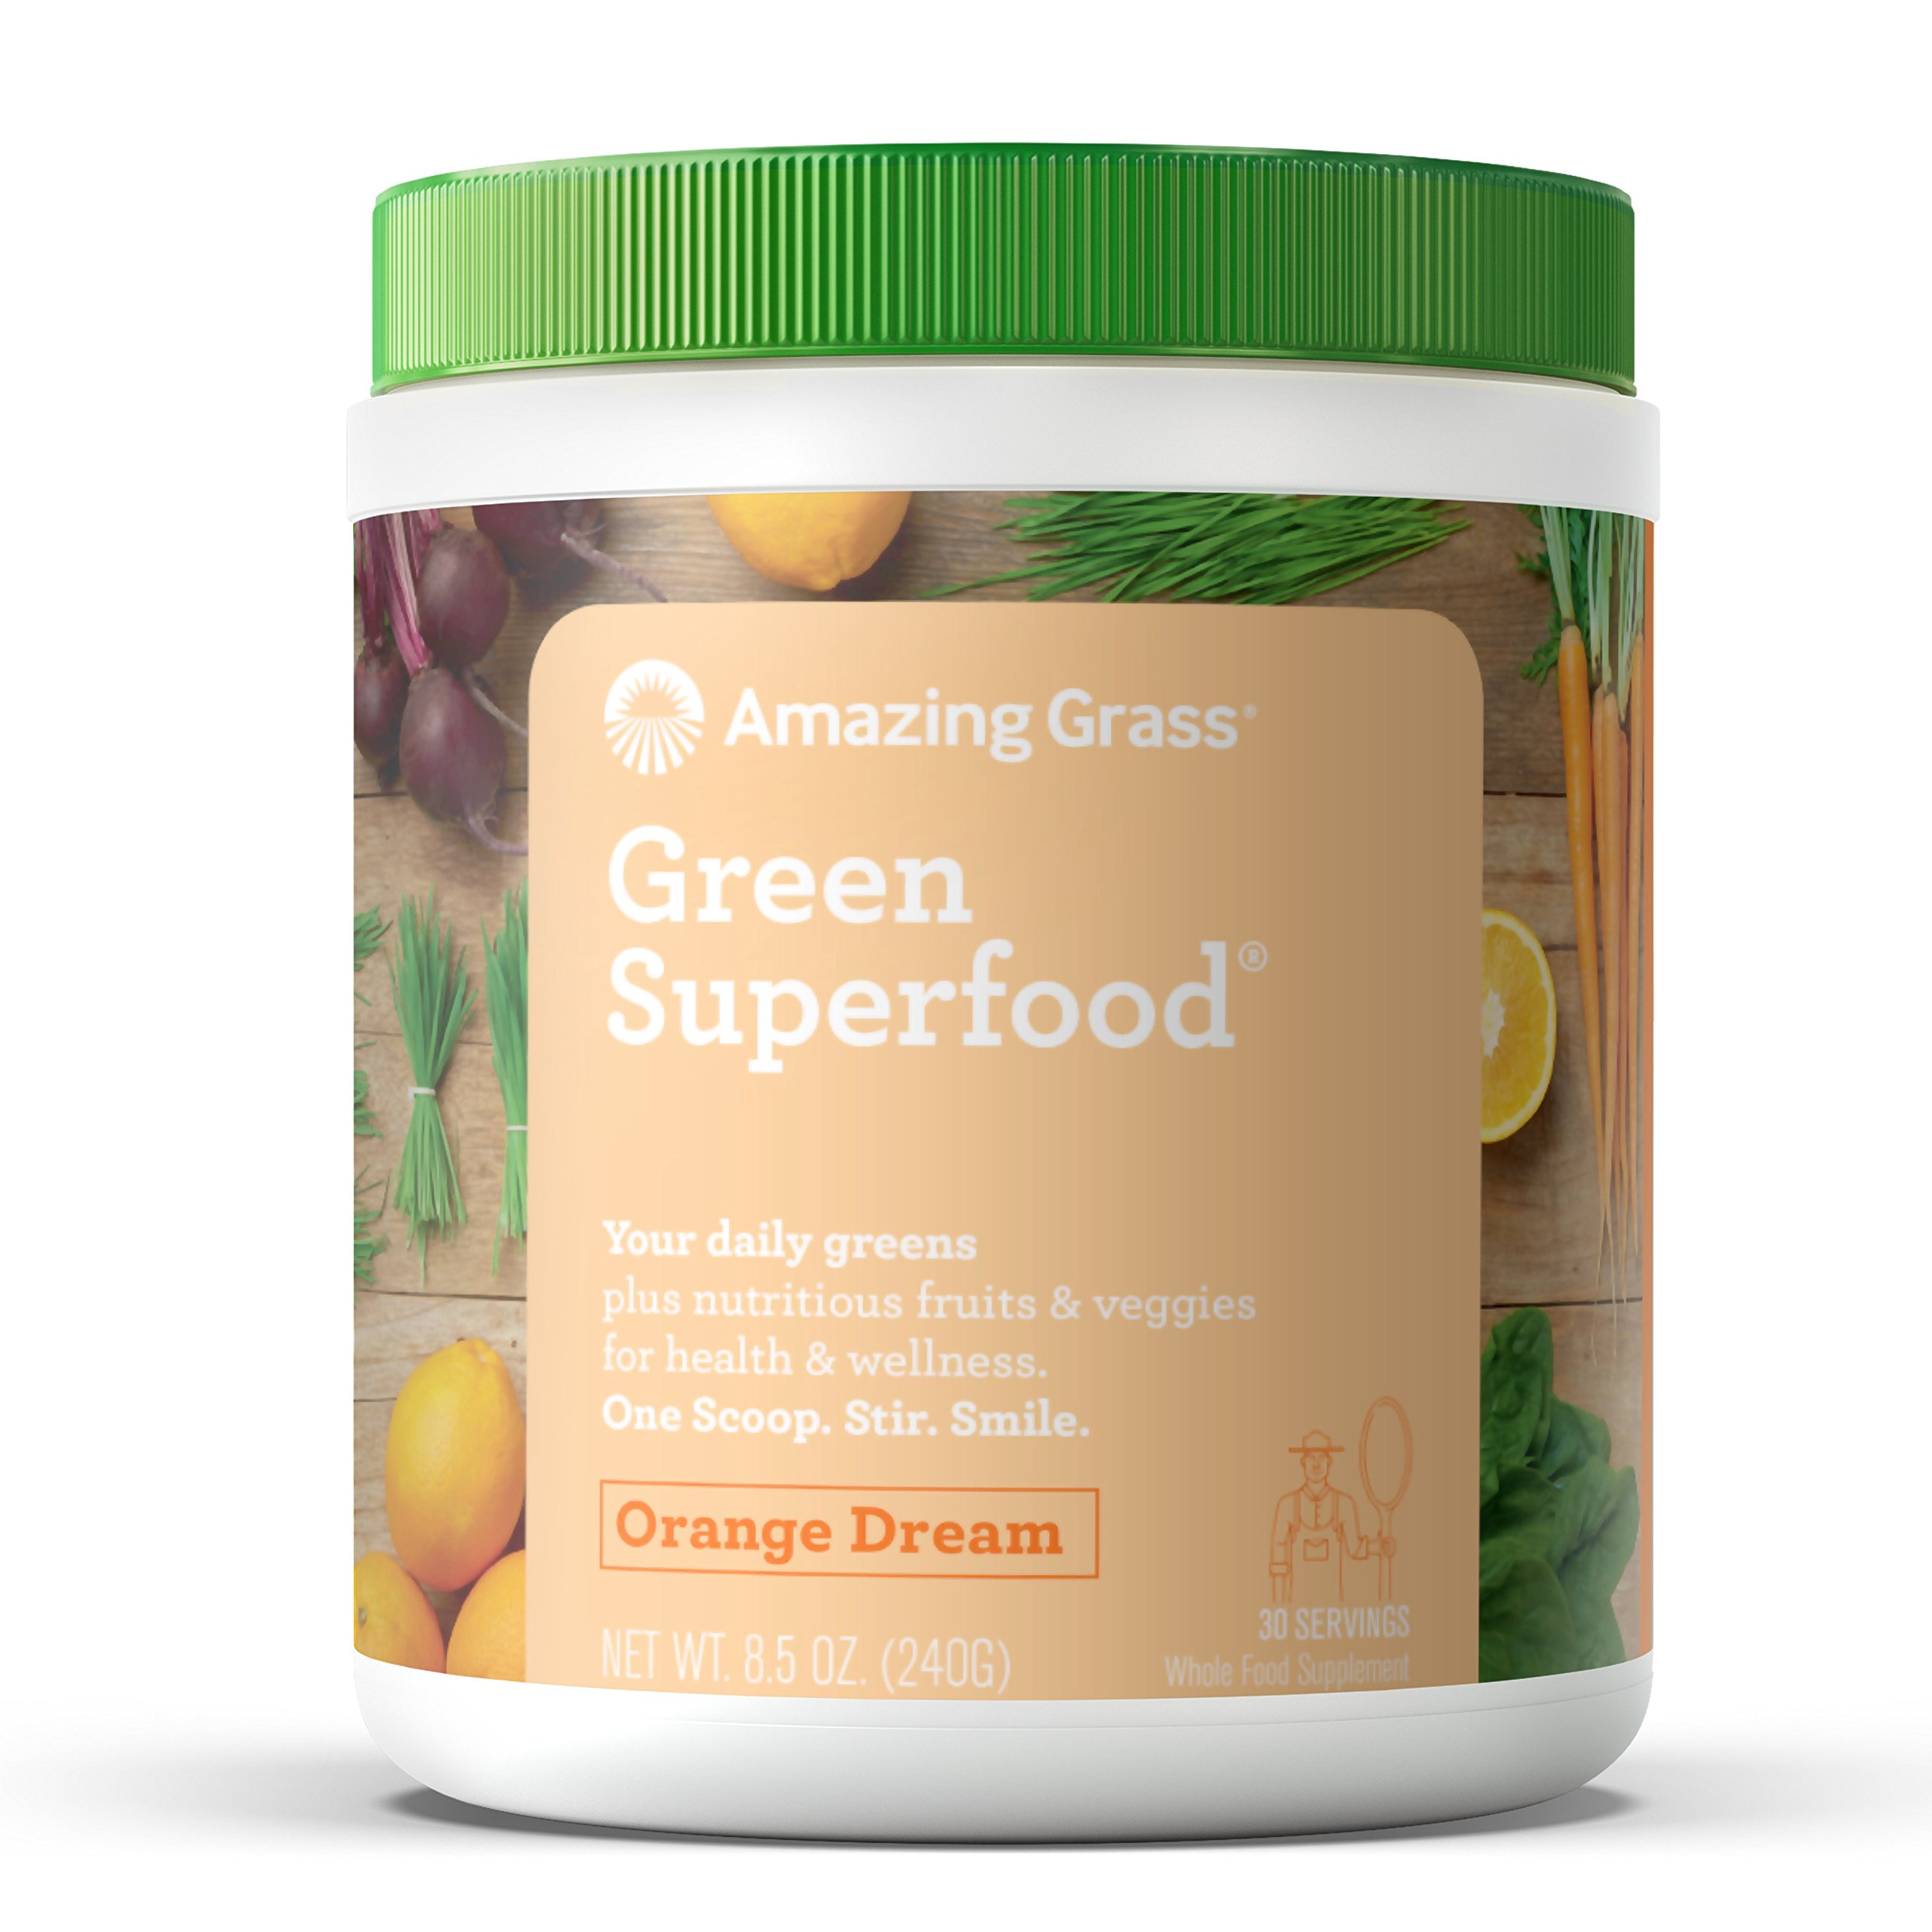 Amazing Grass Green Superfood Organic Powder with Wheat Grass and Greens, Flavor: Orange Dream, 30 Servings